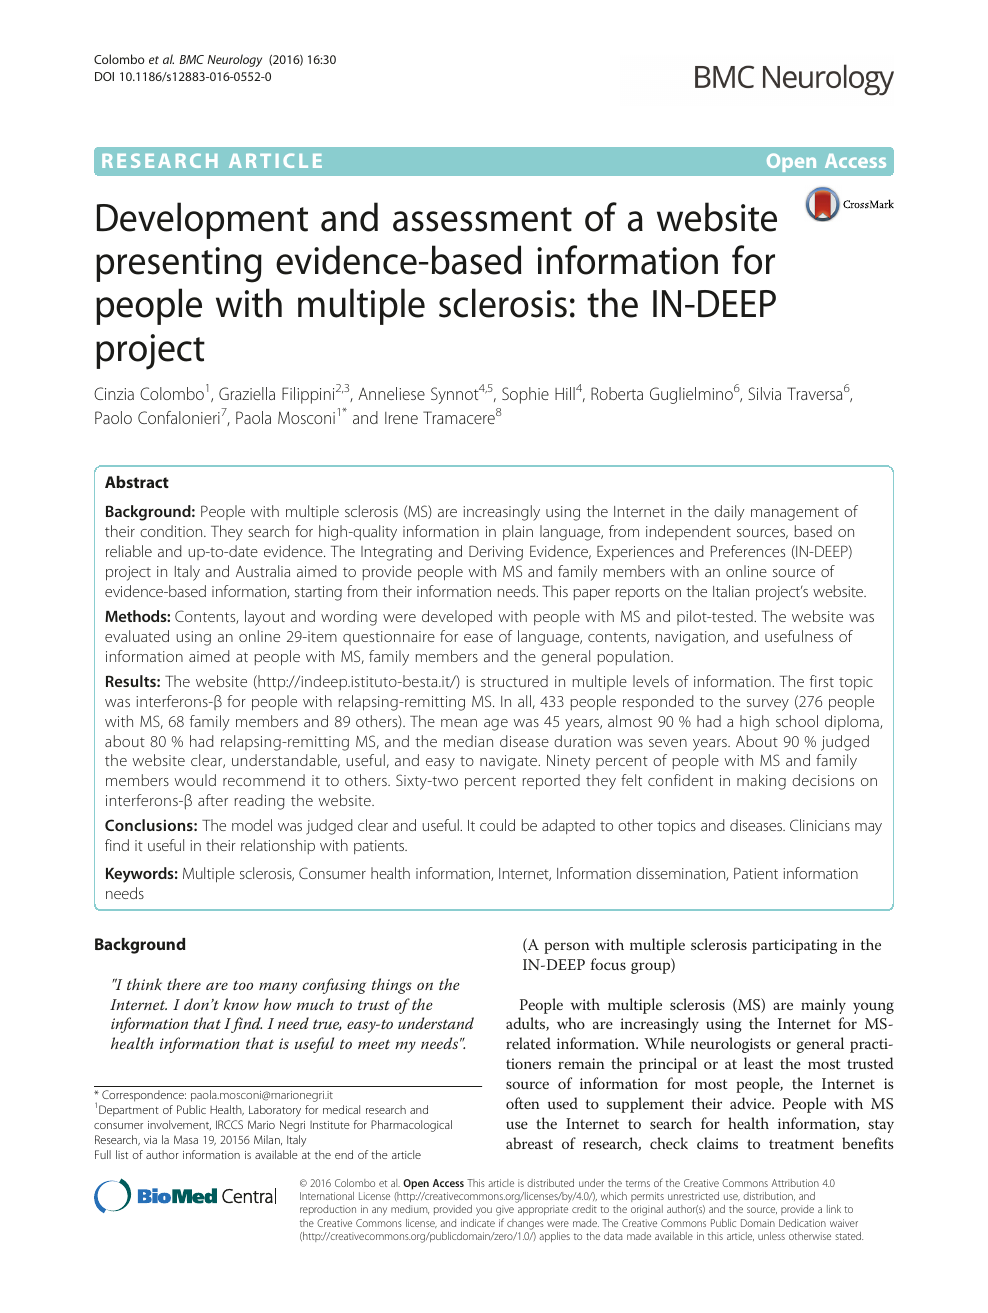 Development and assessment of a website presenting evidence